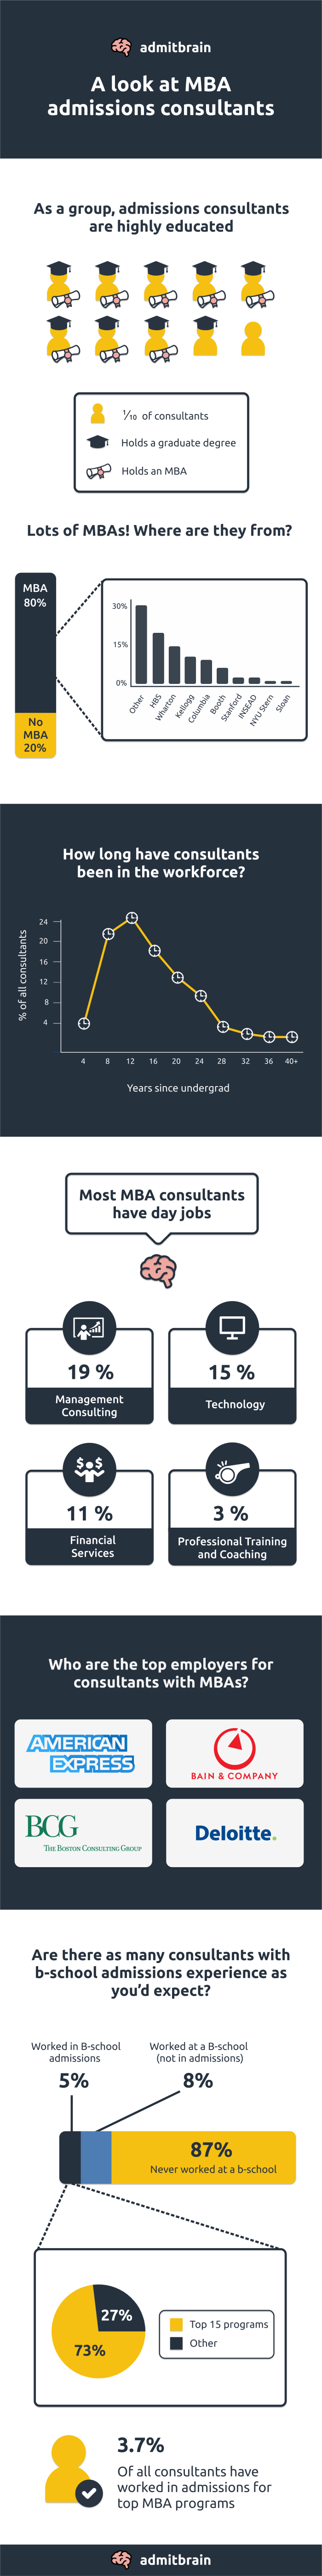 An infographic detailing some professional and educational details around MBA admissions consultants.